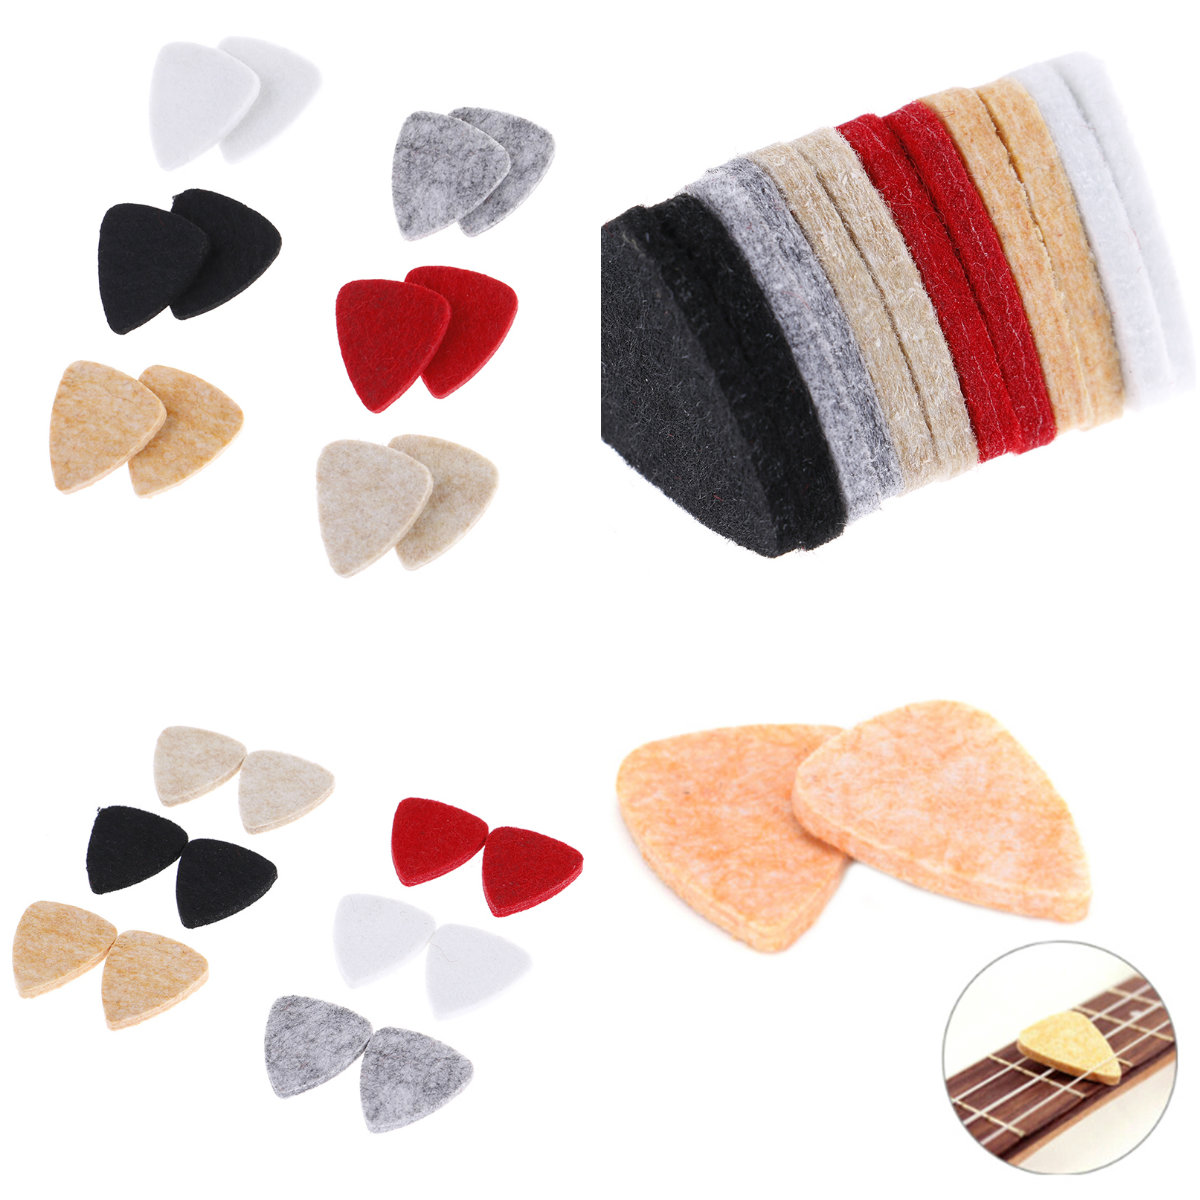 2Pcs  31mm * 26mm Ukulele Soft Felt Picks Plectrum Personalized Ukelele Accessories Useful